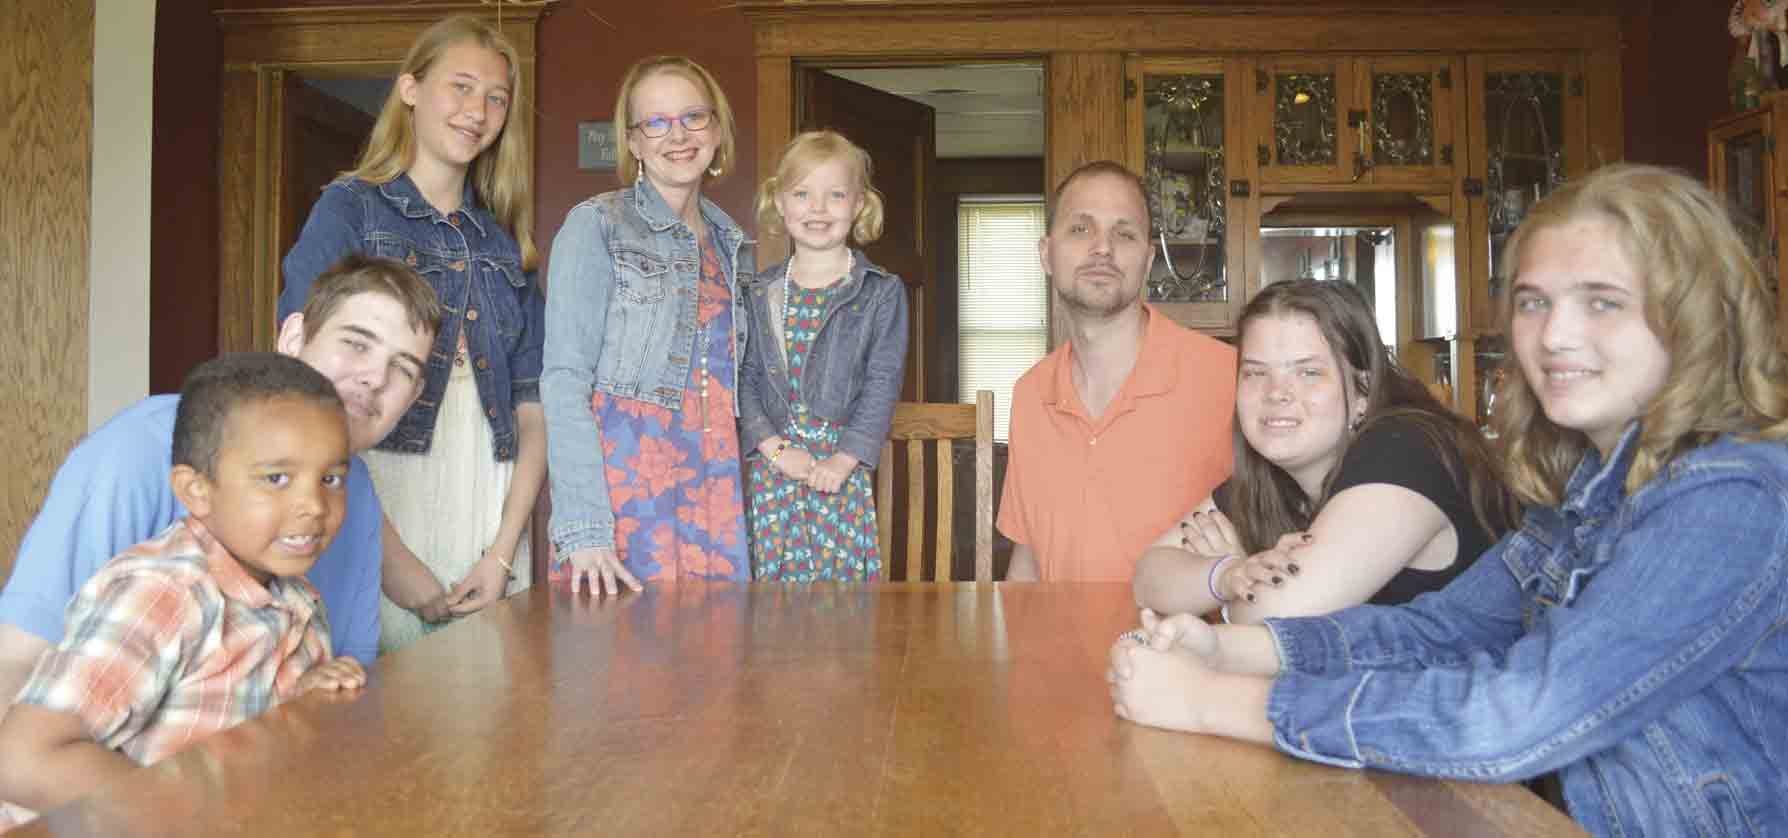 """For (l-r) Trevin, William, Samantha, Heidi, Ella, Kevin, Dawn, and Anita Bohr, the term """"family"""" is one that developed among the eight a little differently from most. With all six adopted children, the tight-knit crew is looking forward to another special Mother's Day this..."""